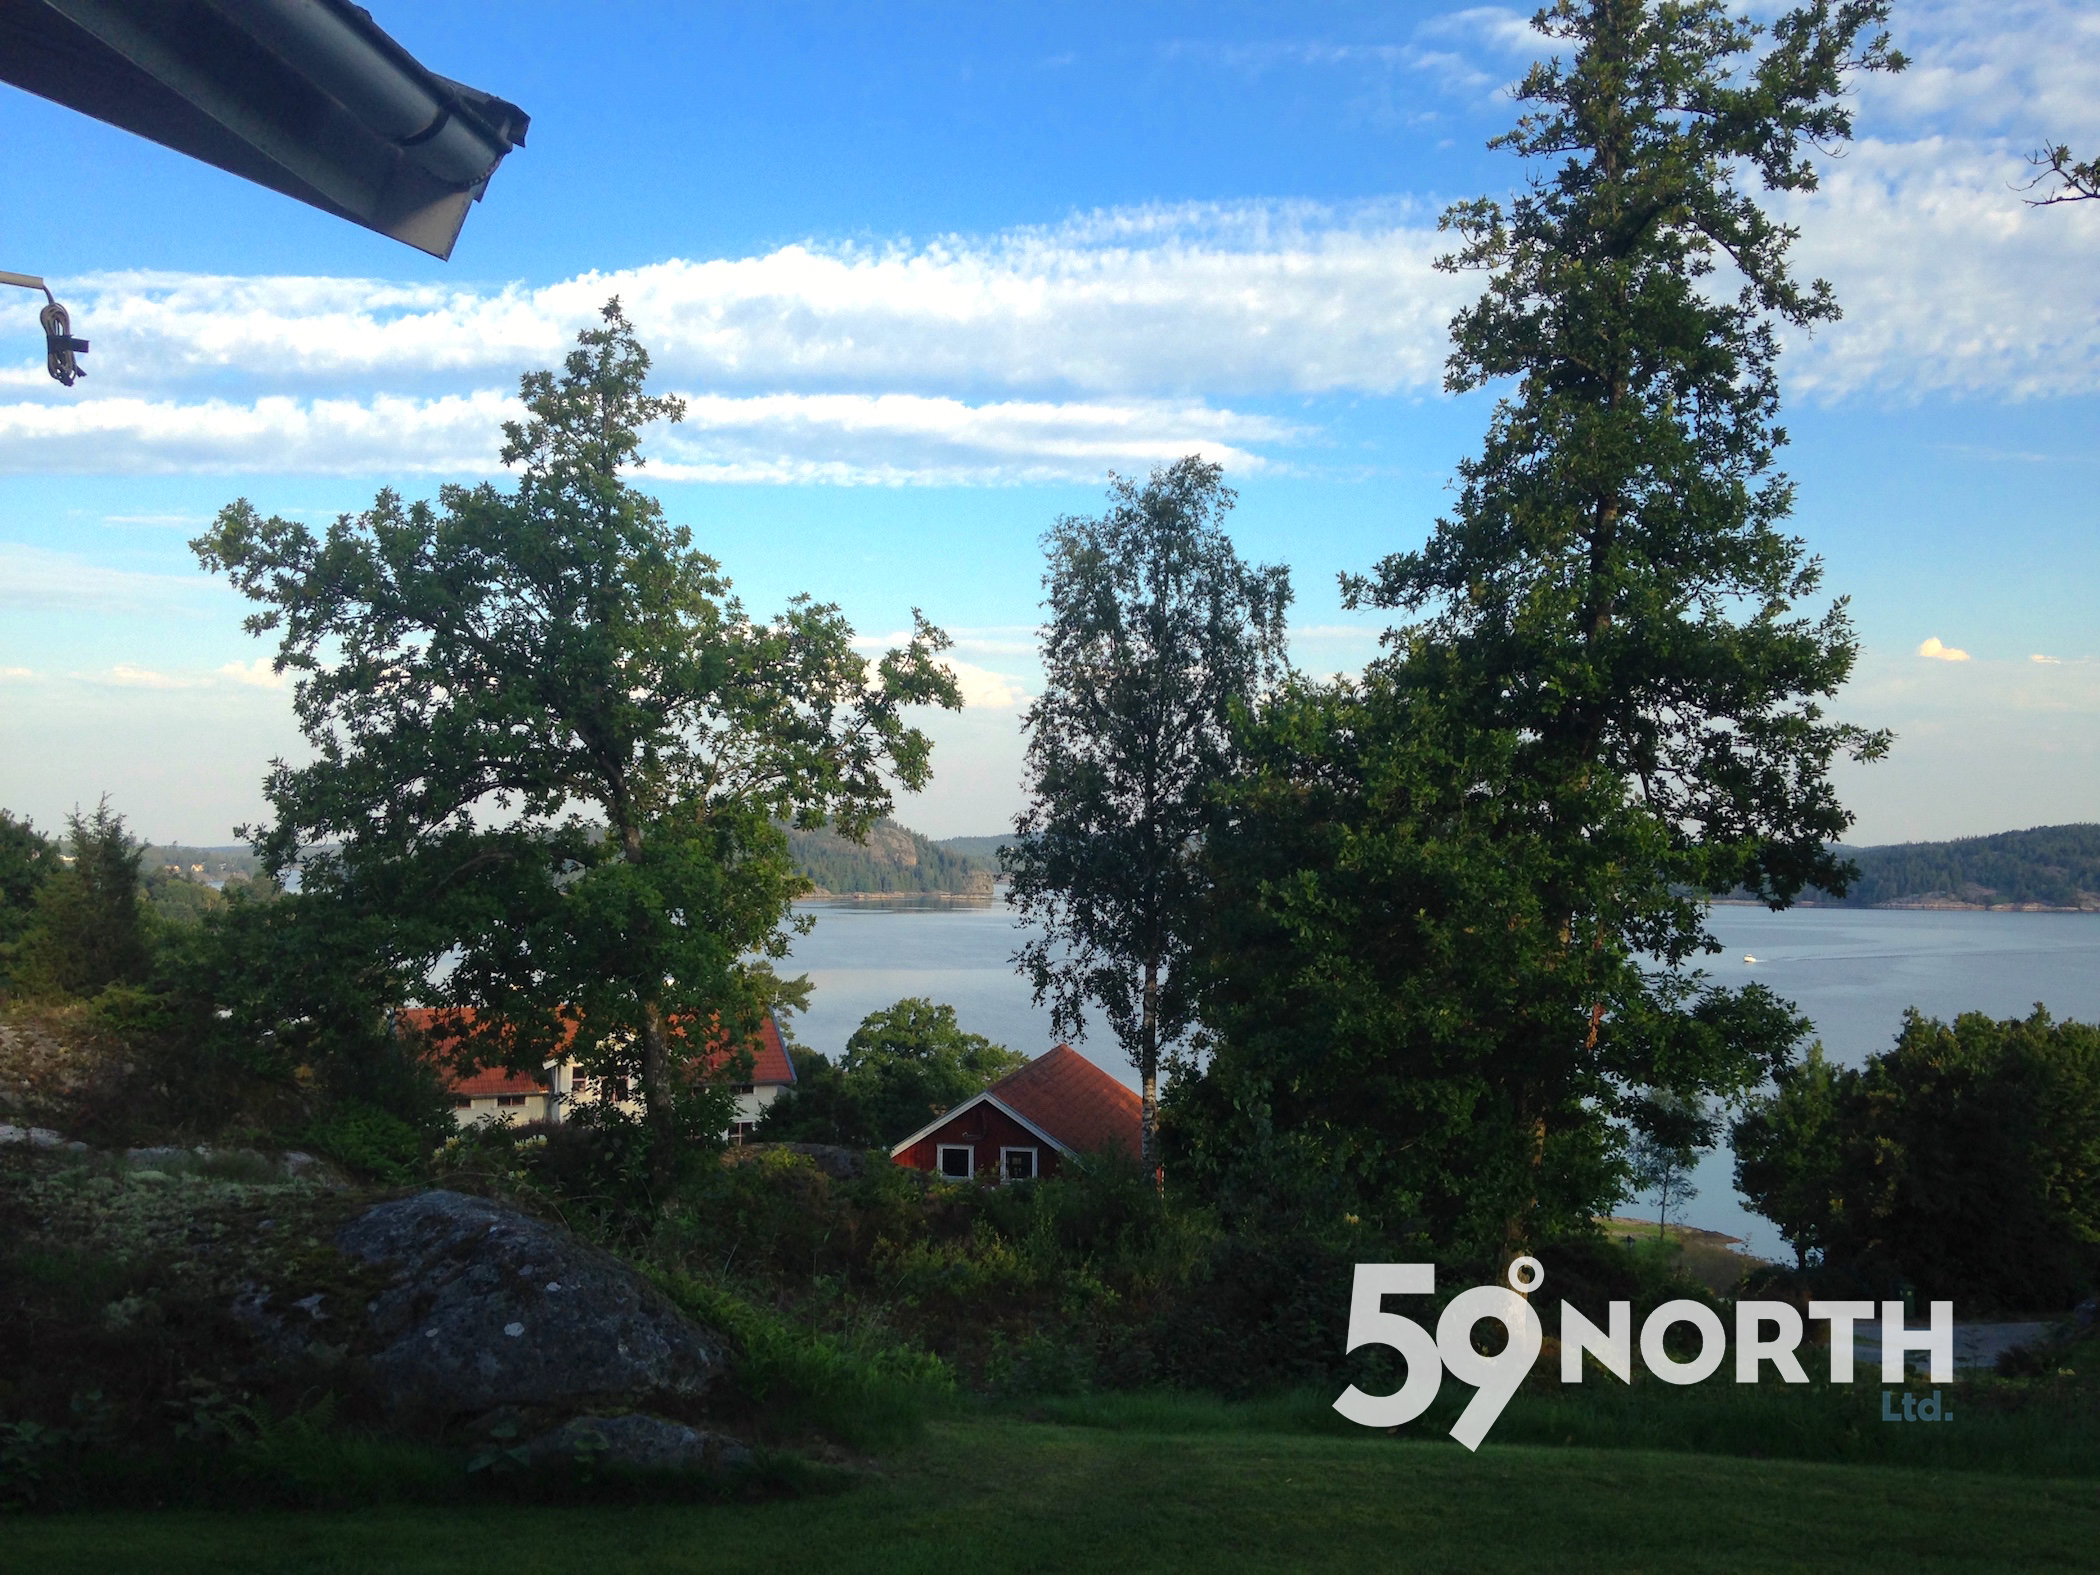 Big thanks to the Ronge family for hosting us during the Hallberg-Rassy 'Öppna Varv' on the West Coast of Sweden. Morning coffee with this view for almost a week! Aug. 2016